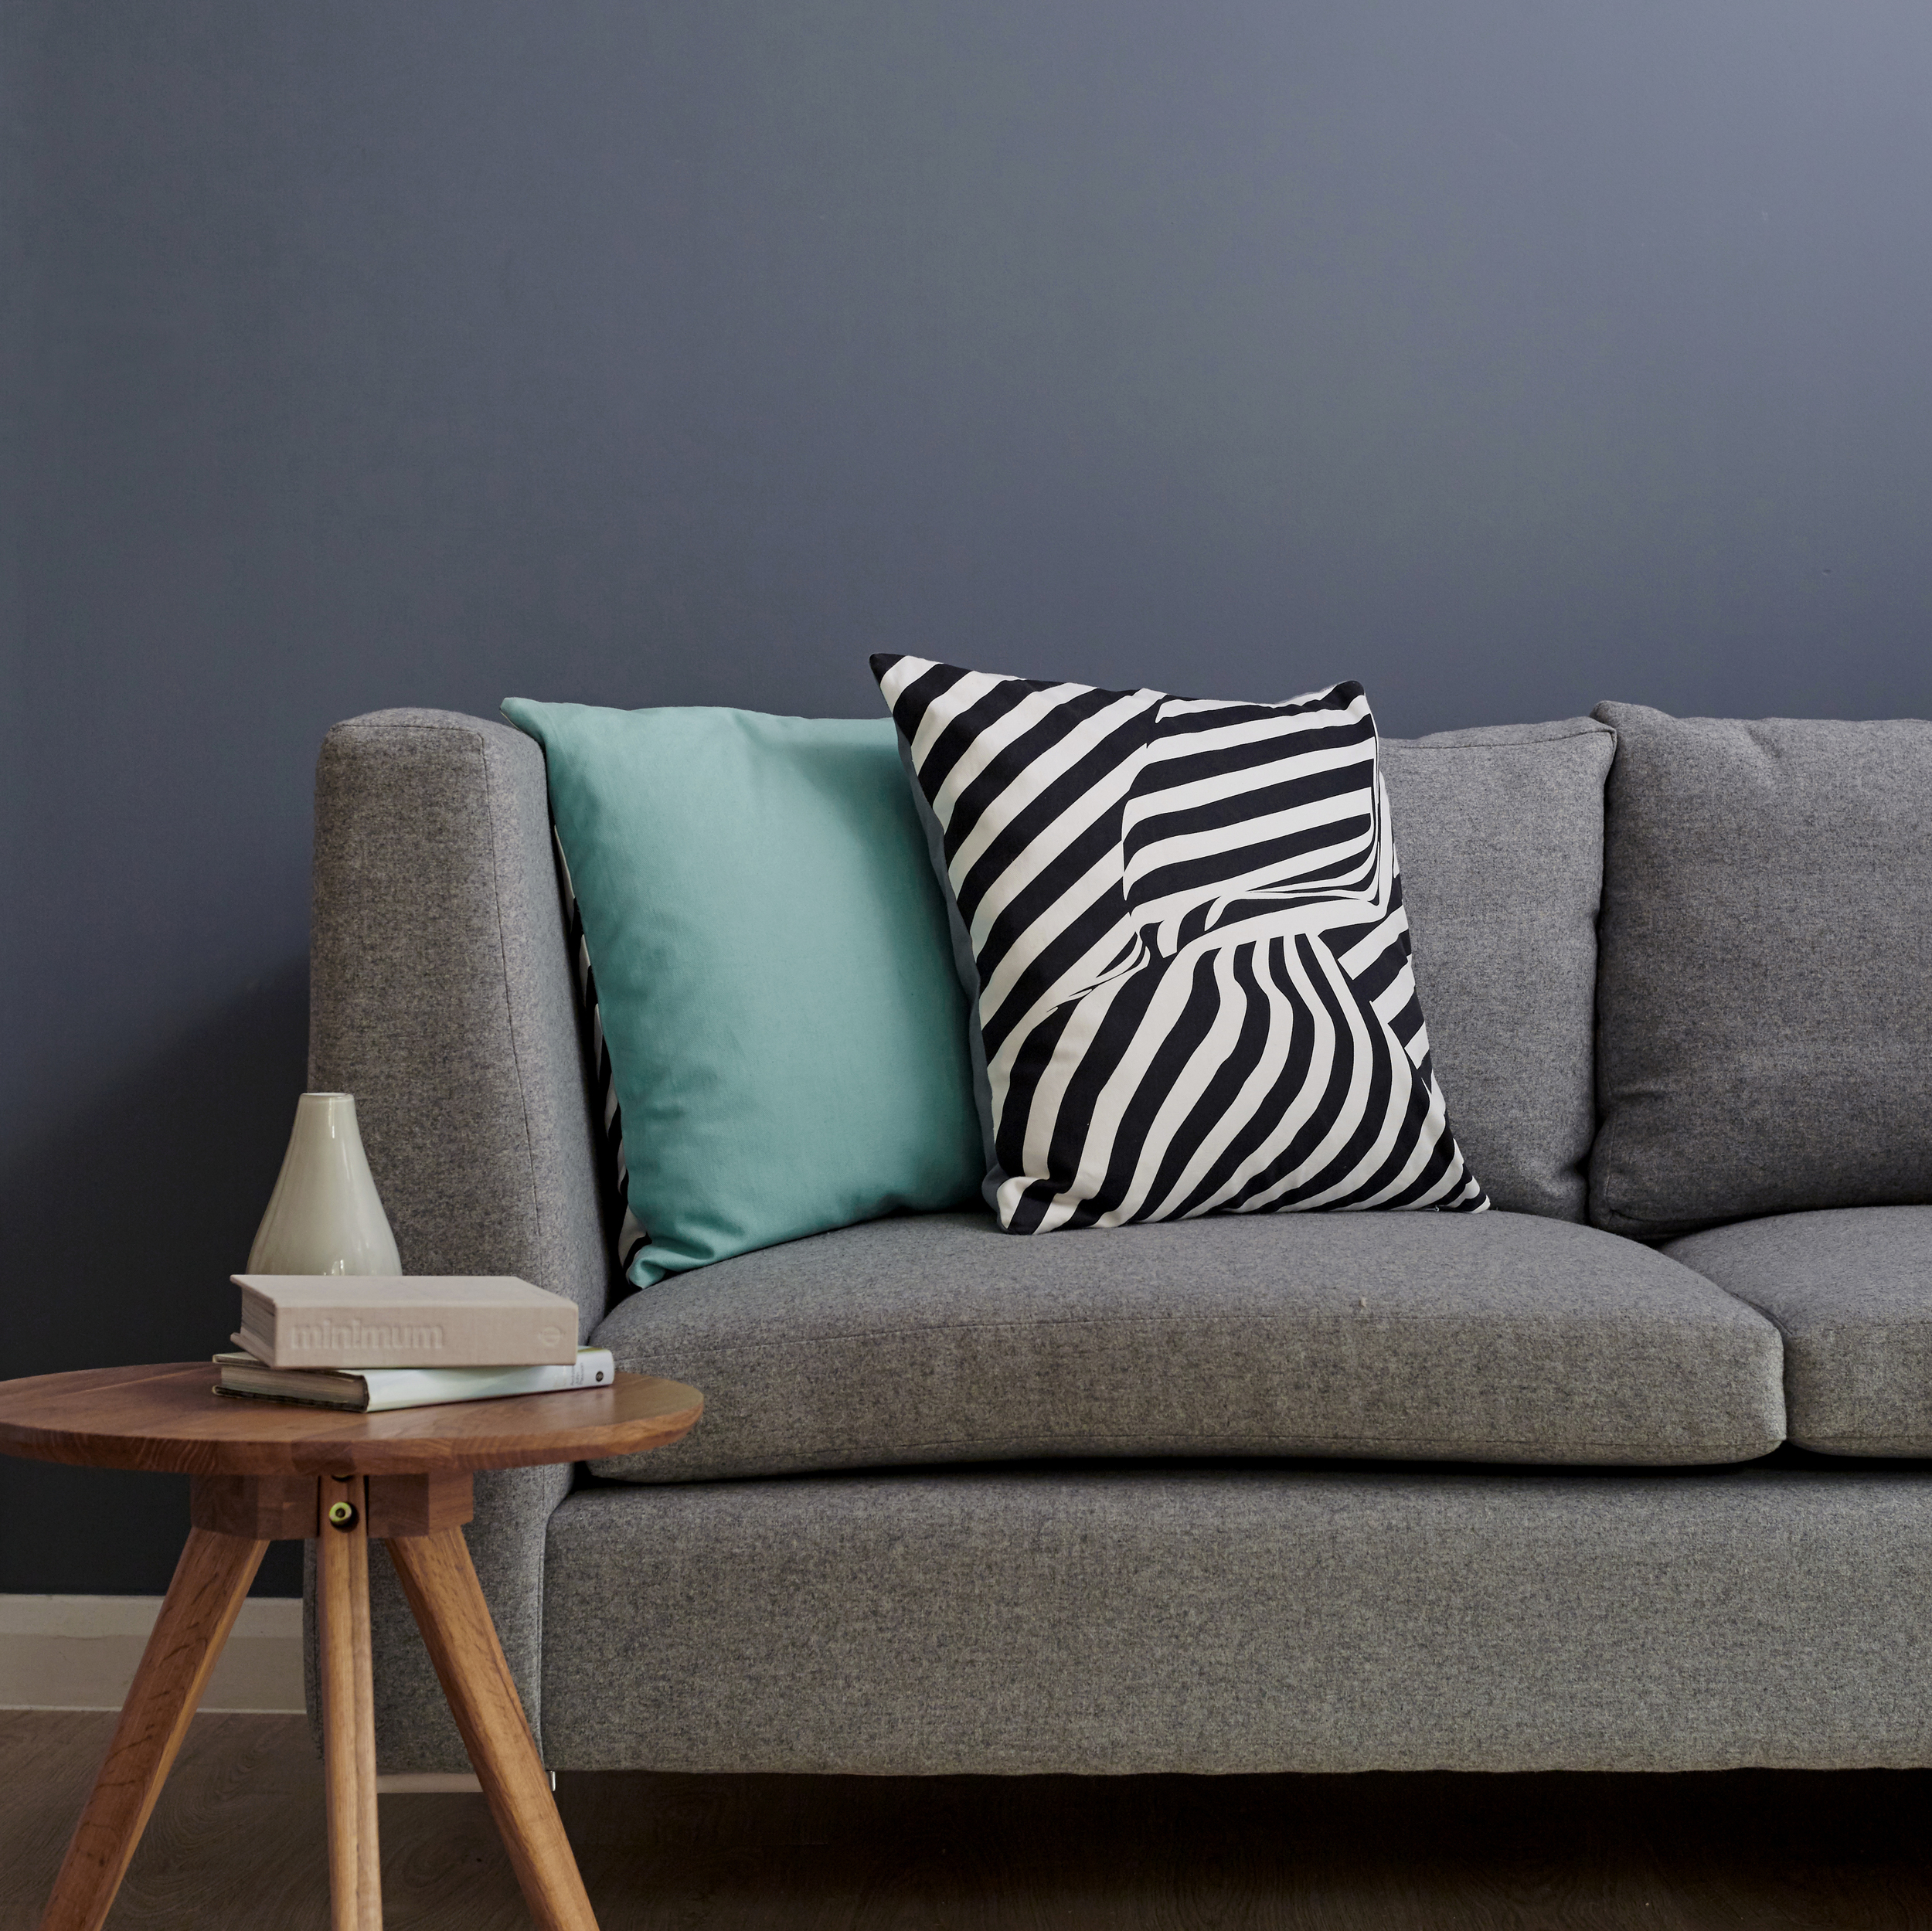 BTL_Above and Beyond monochrome cushions lifestyle2.jpg